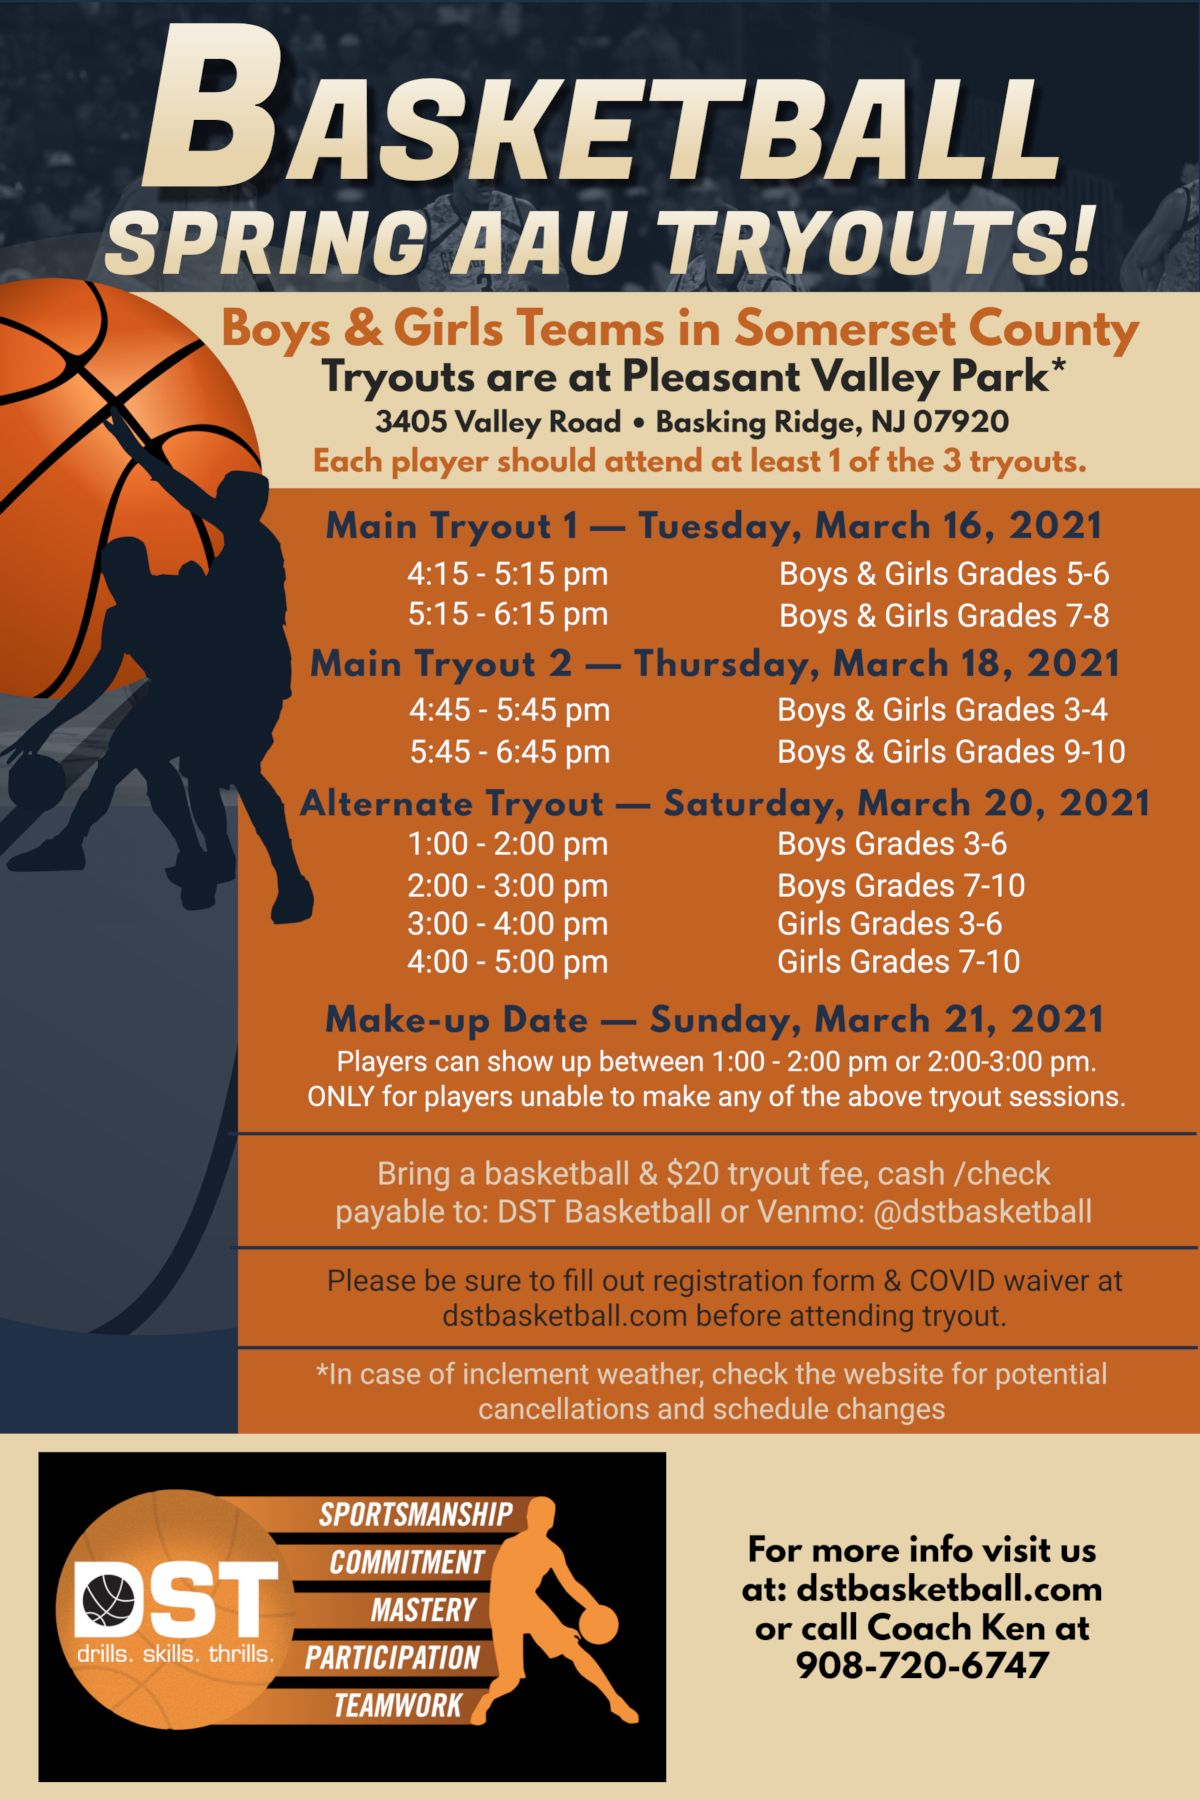 DST Basketball - Somerset County AAU Tryouts